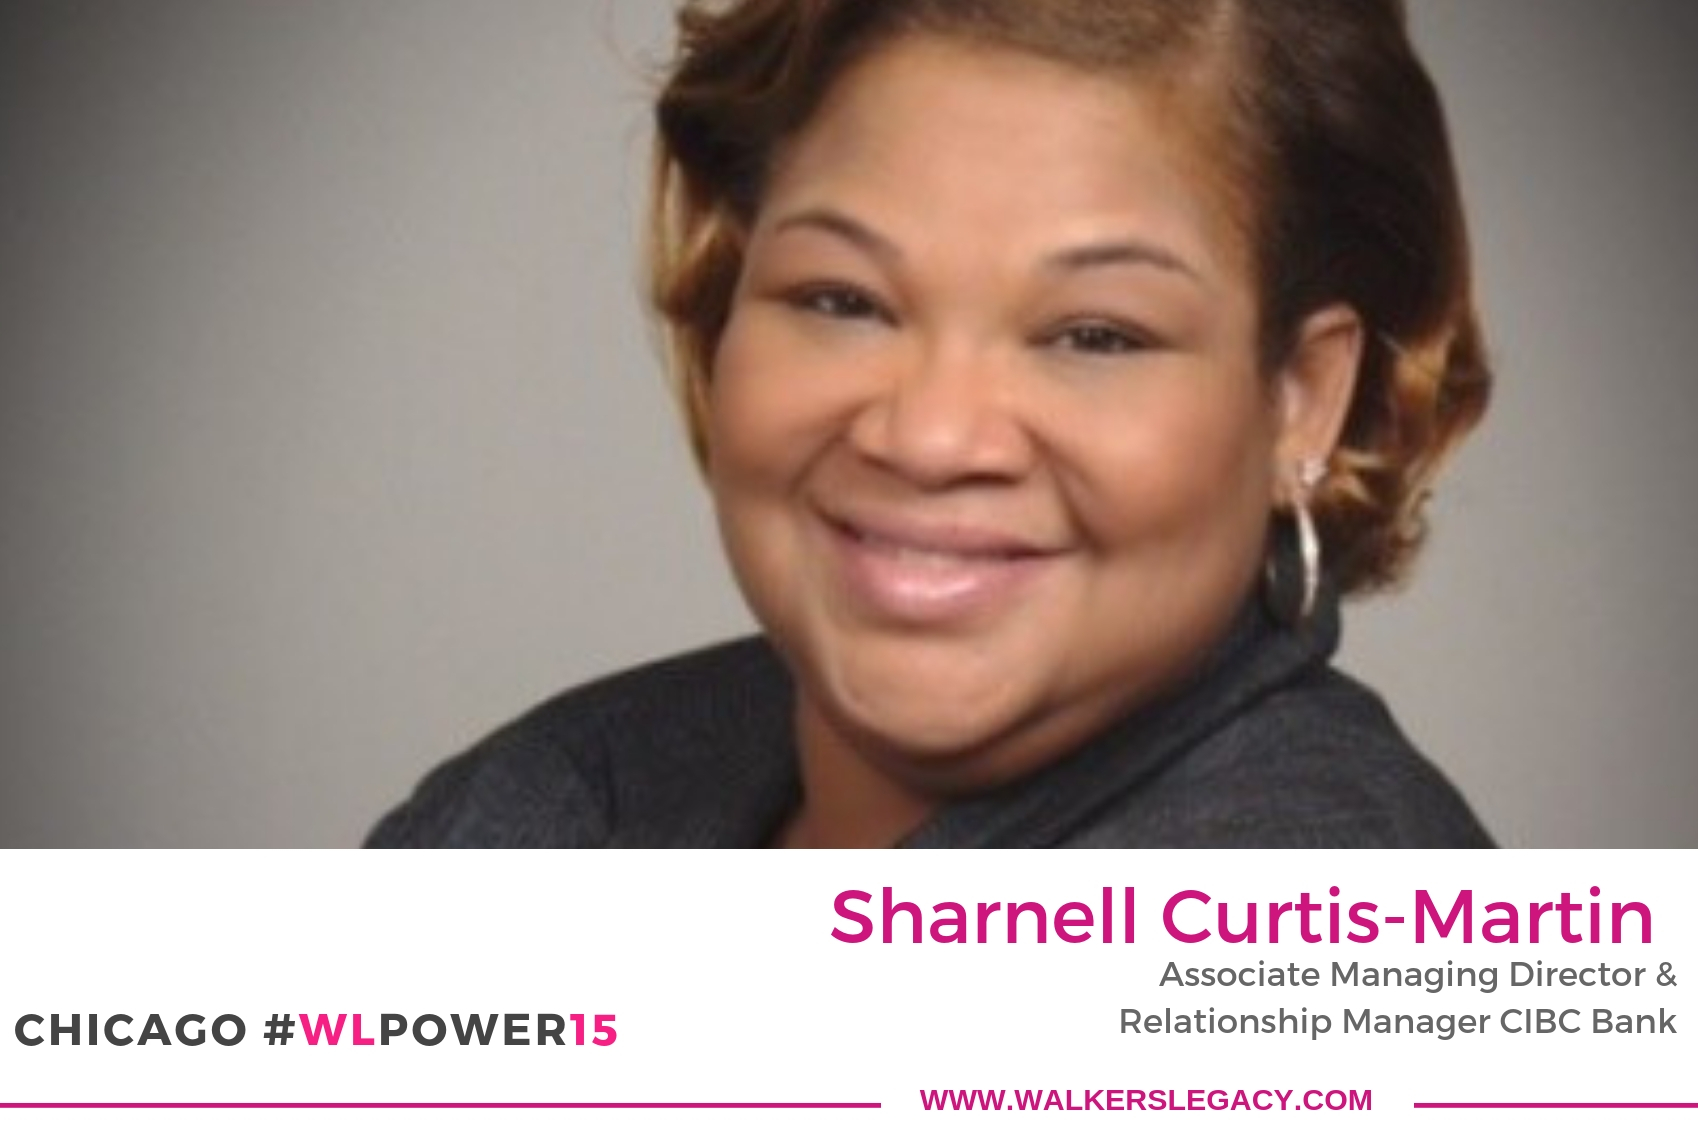 Sharnell Curtis-Martin